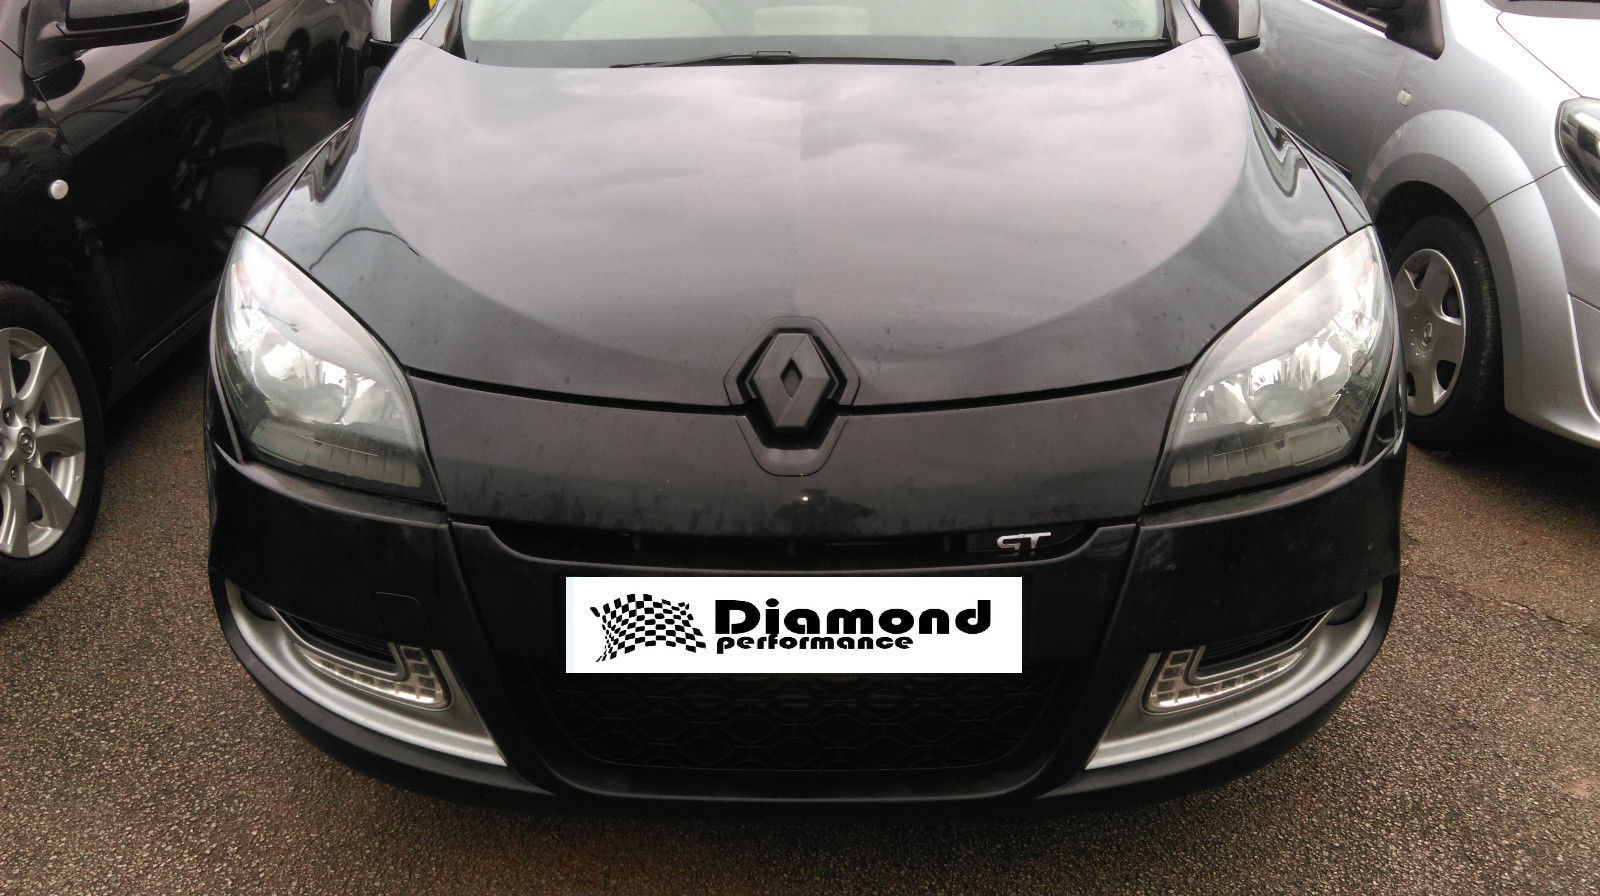 renault megane 3 2009 2013 gloss black inc rs250 badge cover set pre facelift diamond. Black Bedroom Furniture Sets. Home Design Ideas